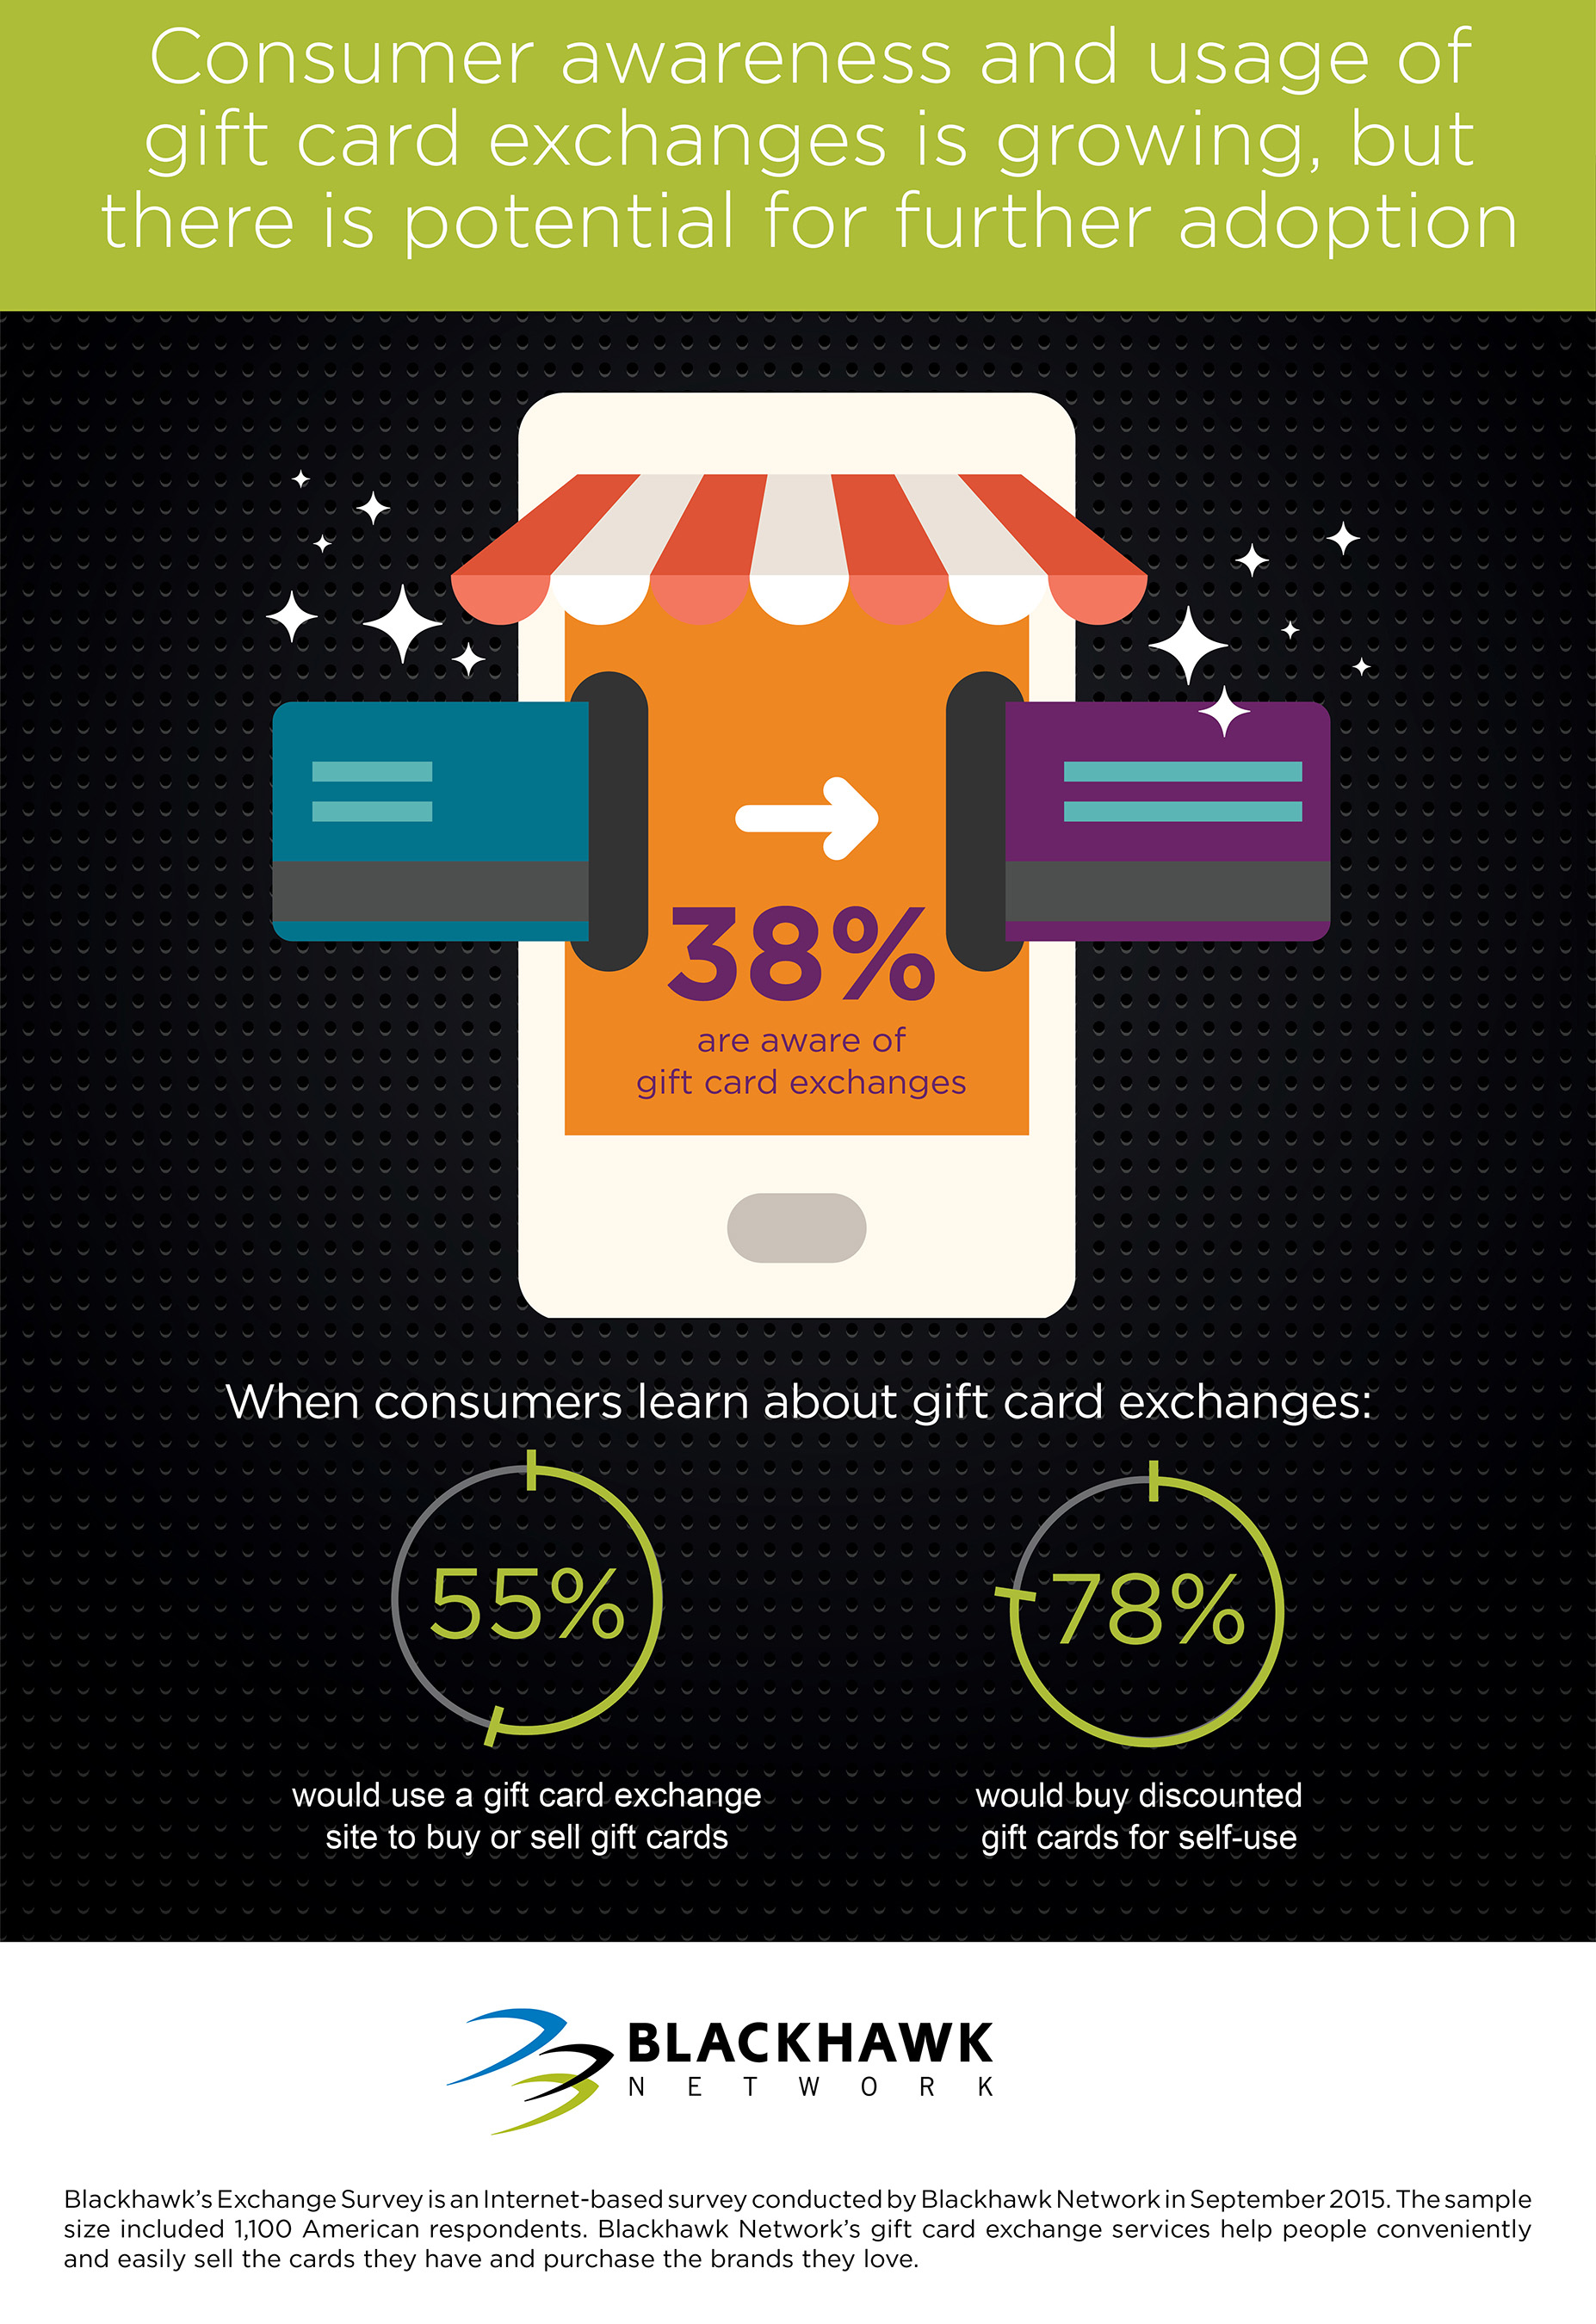 Consumer awareness and usage of gift card exchanges is growing, but there is potential for further adoption